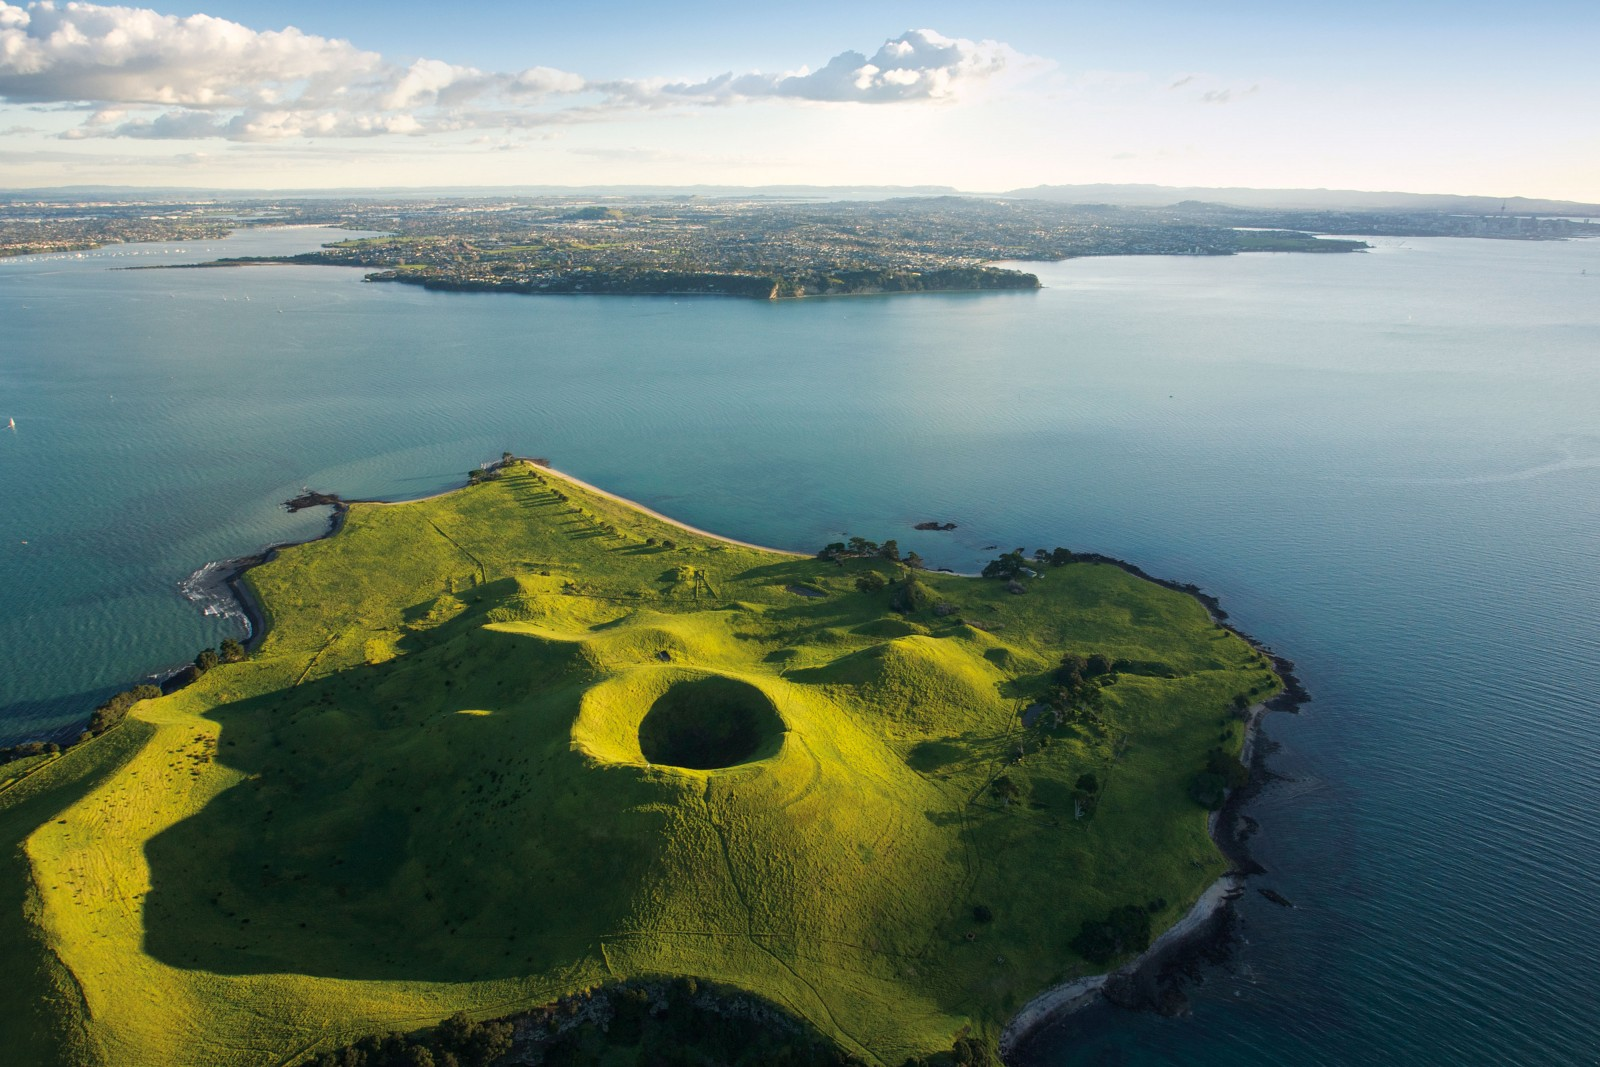 The verdant cone of Brown's Island/Motokorea was the result of a cluster of volcanic events in the Auckland field beginning some 34,000 years ago. The lack of trees due to centuries of cultivation (it was one of the earliest European settlements in the Auckland area, purchased by William Brown and Logan Campbell in 1840), highlights the signatures of volcanic activity—a large scoria cone with a deep crater, a tuff ring forming the cliffs in the northeast, and the upper portions of lava flows that run into the sea.